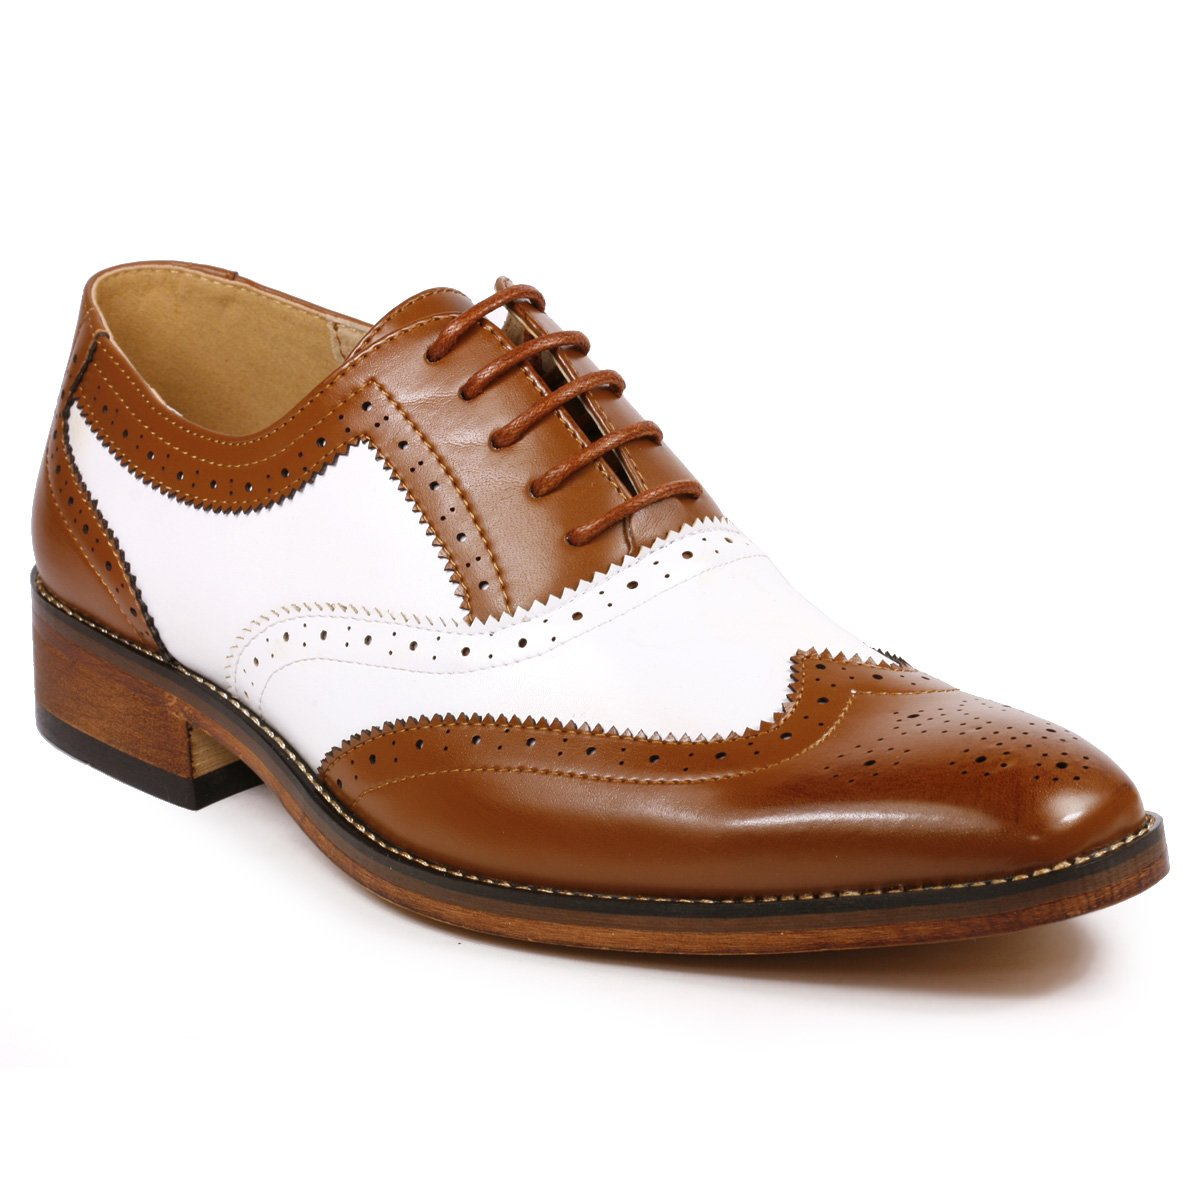 Mens 1920s Shoes History and Buying Guide Mens Two Tone Perforated Wing Tip Lace Up Oxford Dress Shoes Metrocharm MC118  £47.49 AT vintagedancer.com